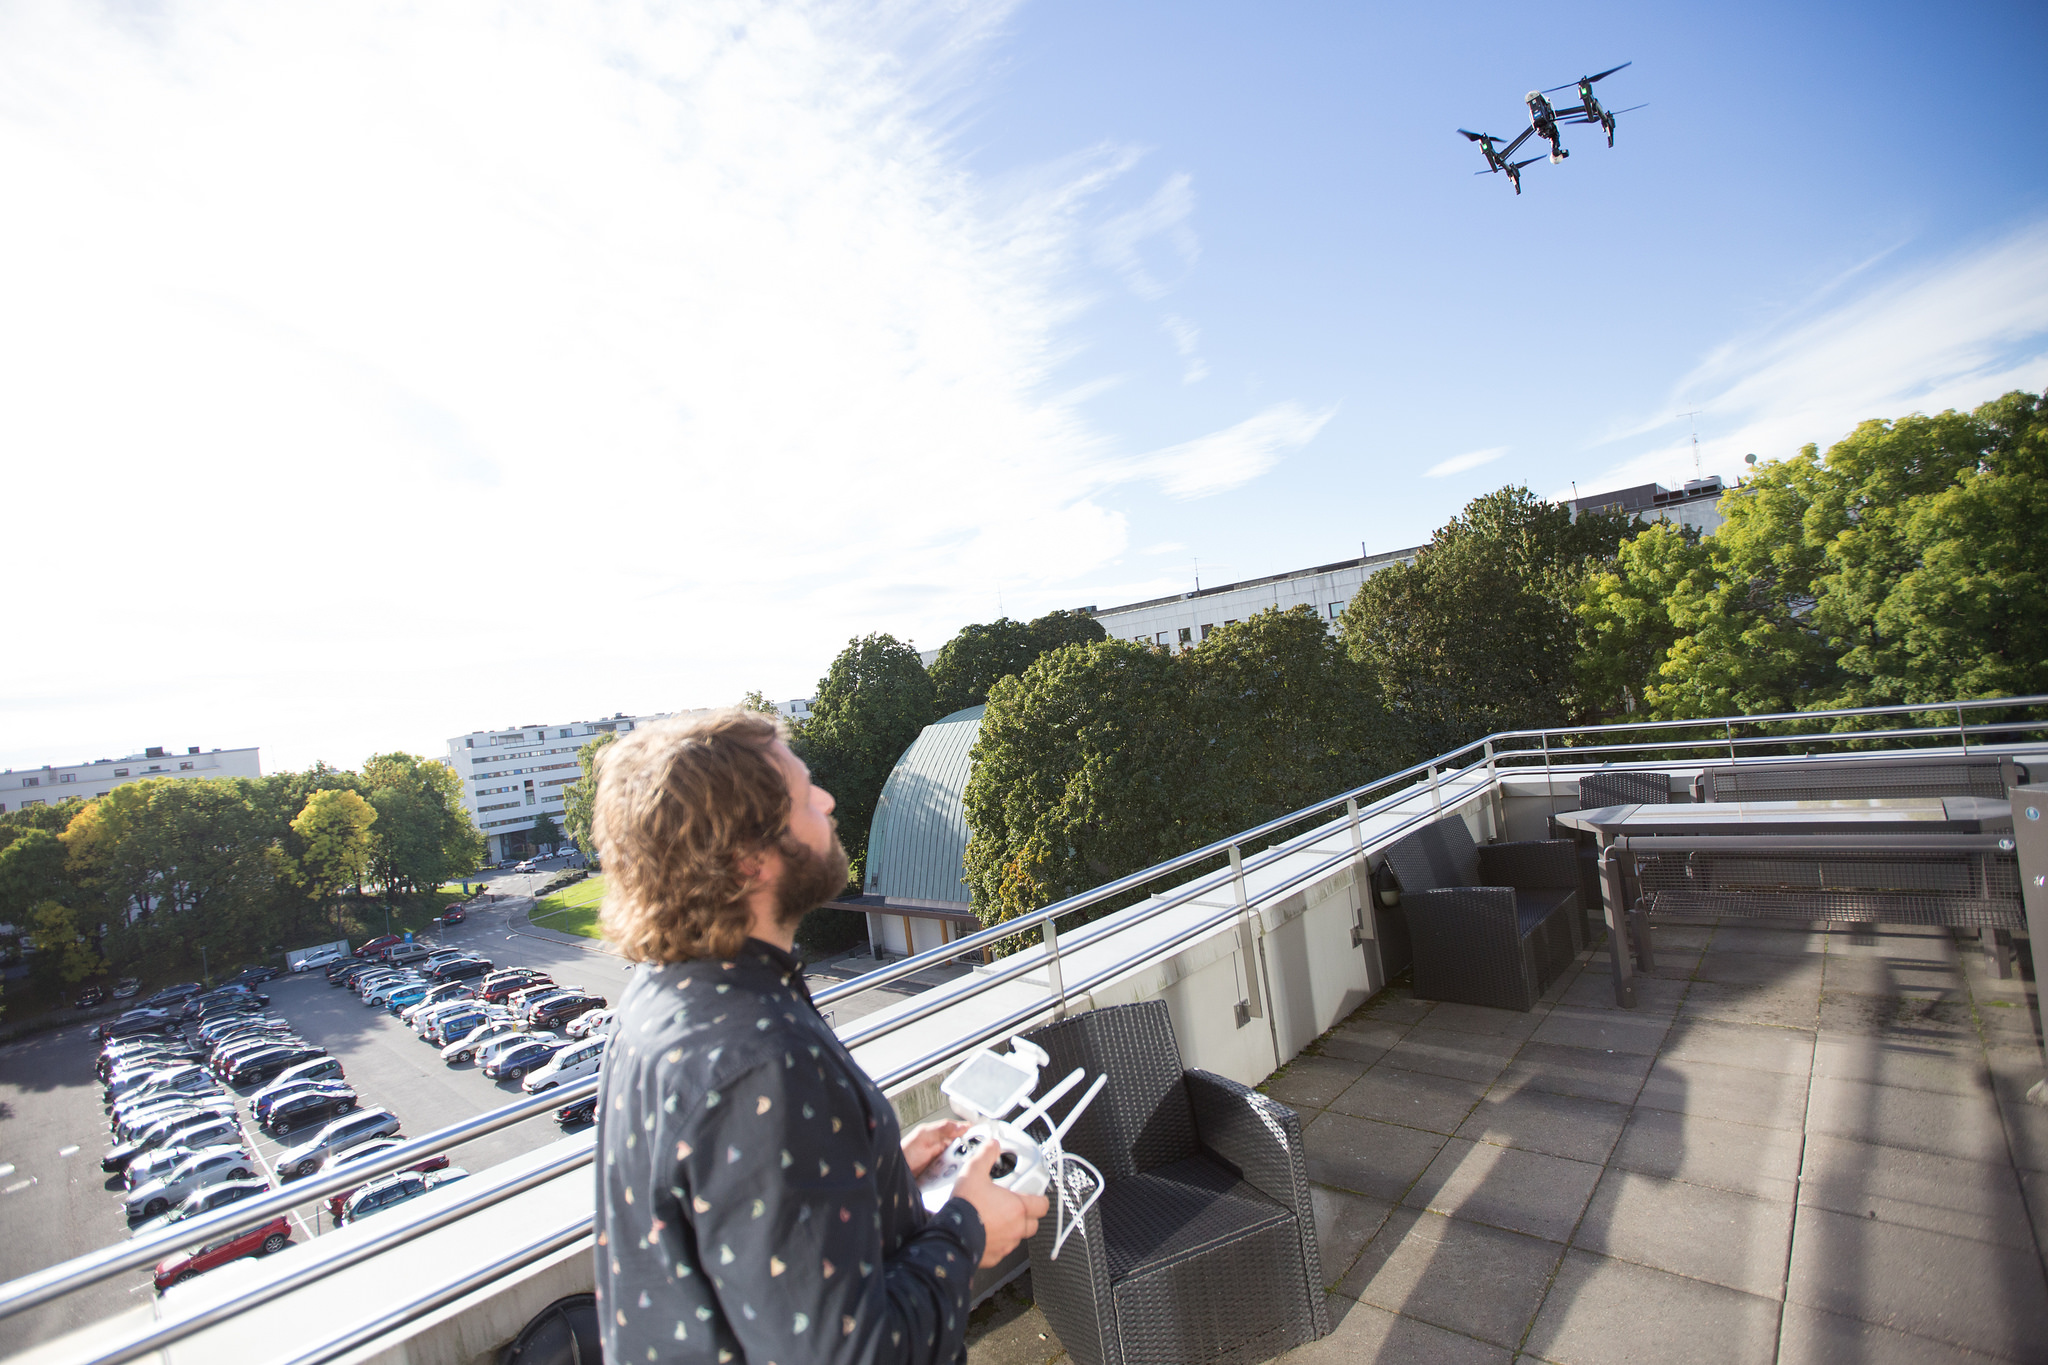 Flying a drone, nrkbeta September 30, 2015